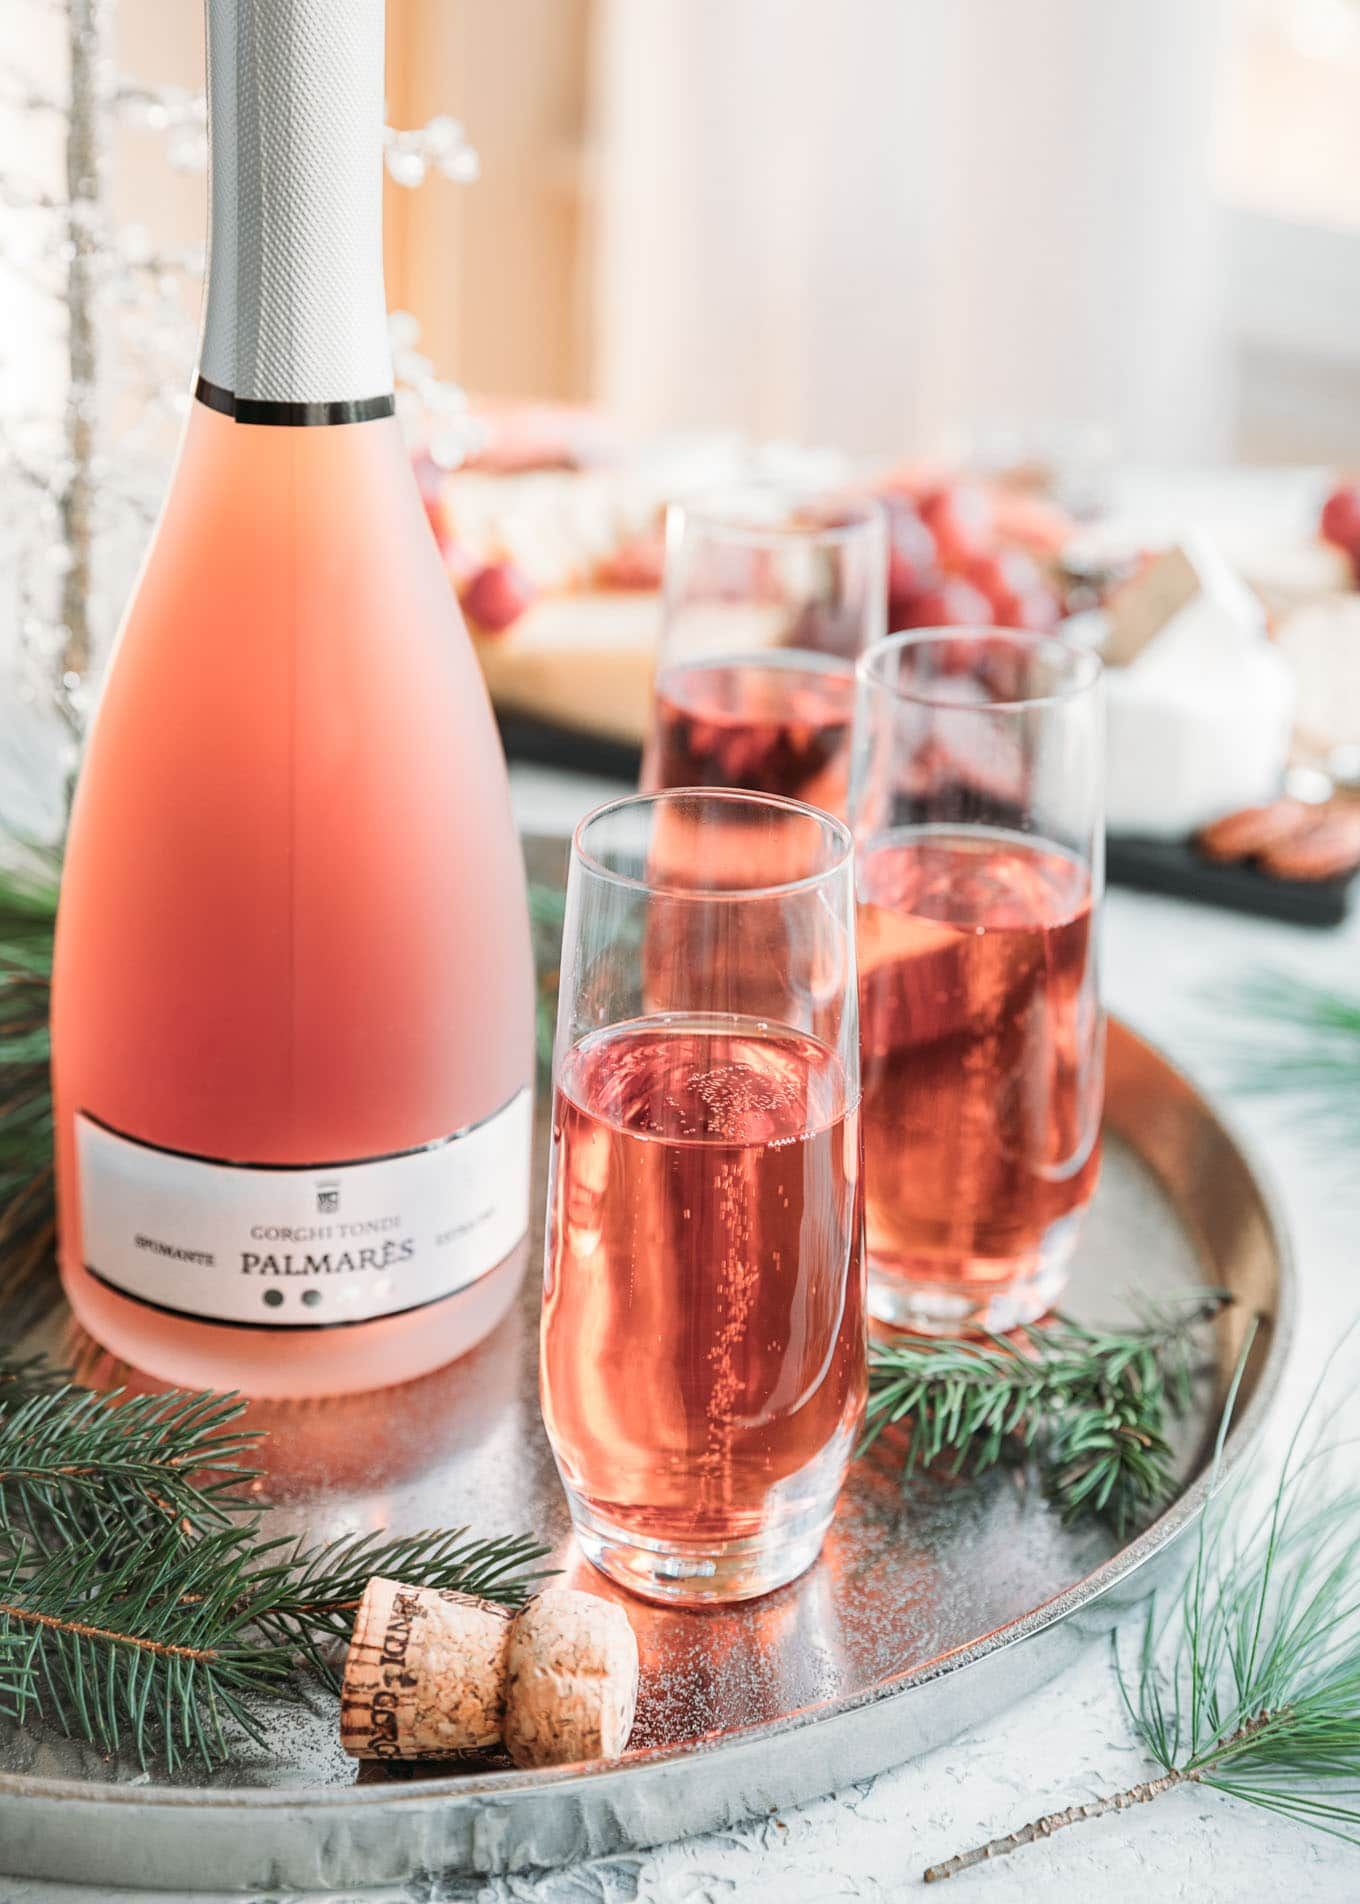 Make It More Than Rose All Day Make It Rose For Holidays Best Rose Wine Holiday Wine Rose Drink